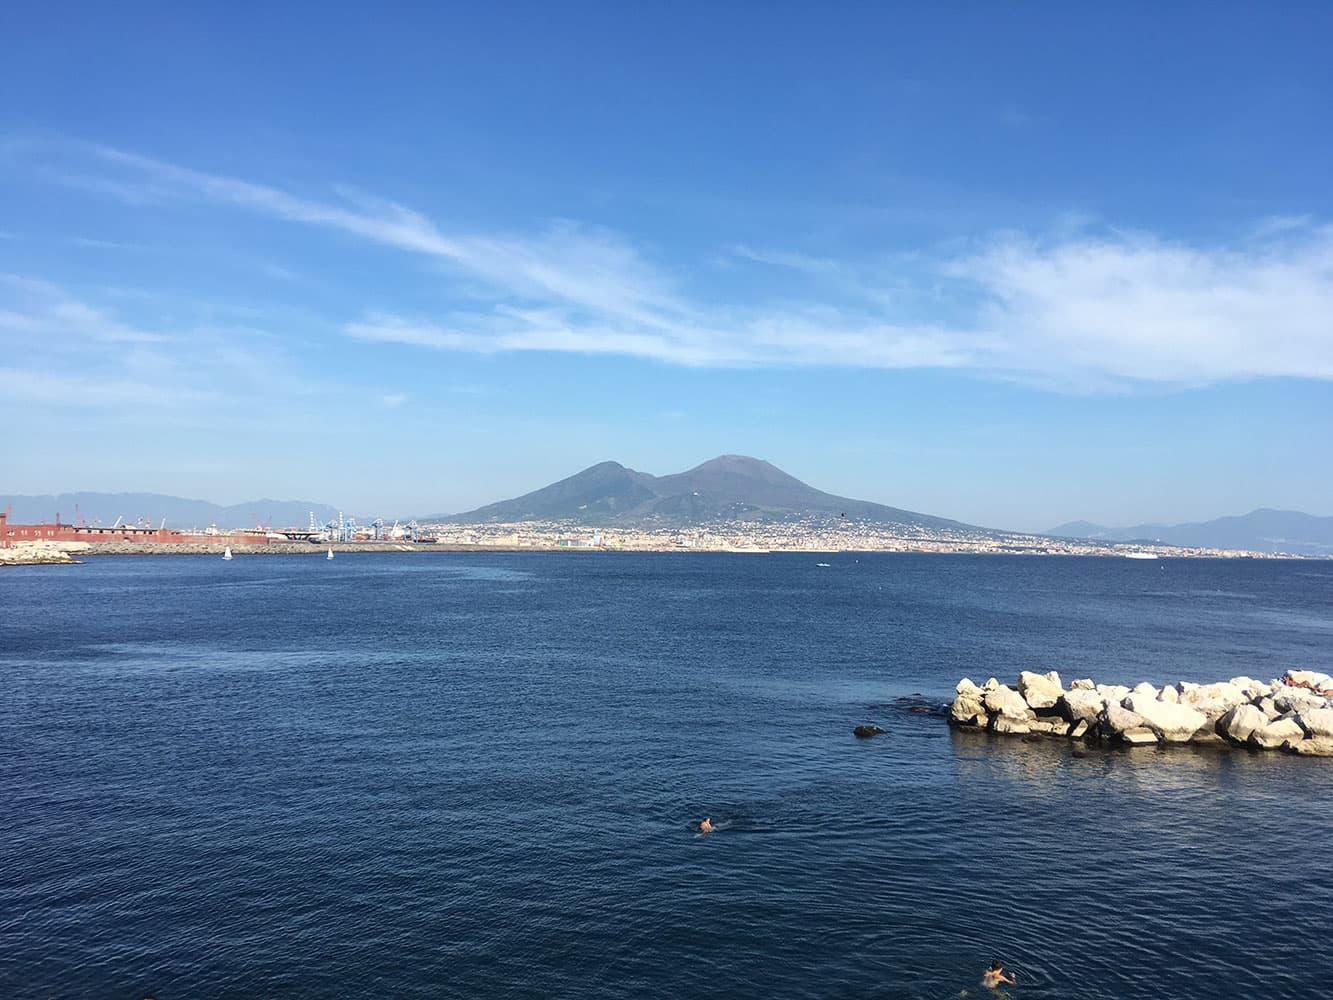 People swimming in the sea under the watch of Vesuvius